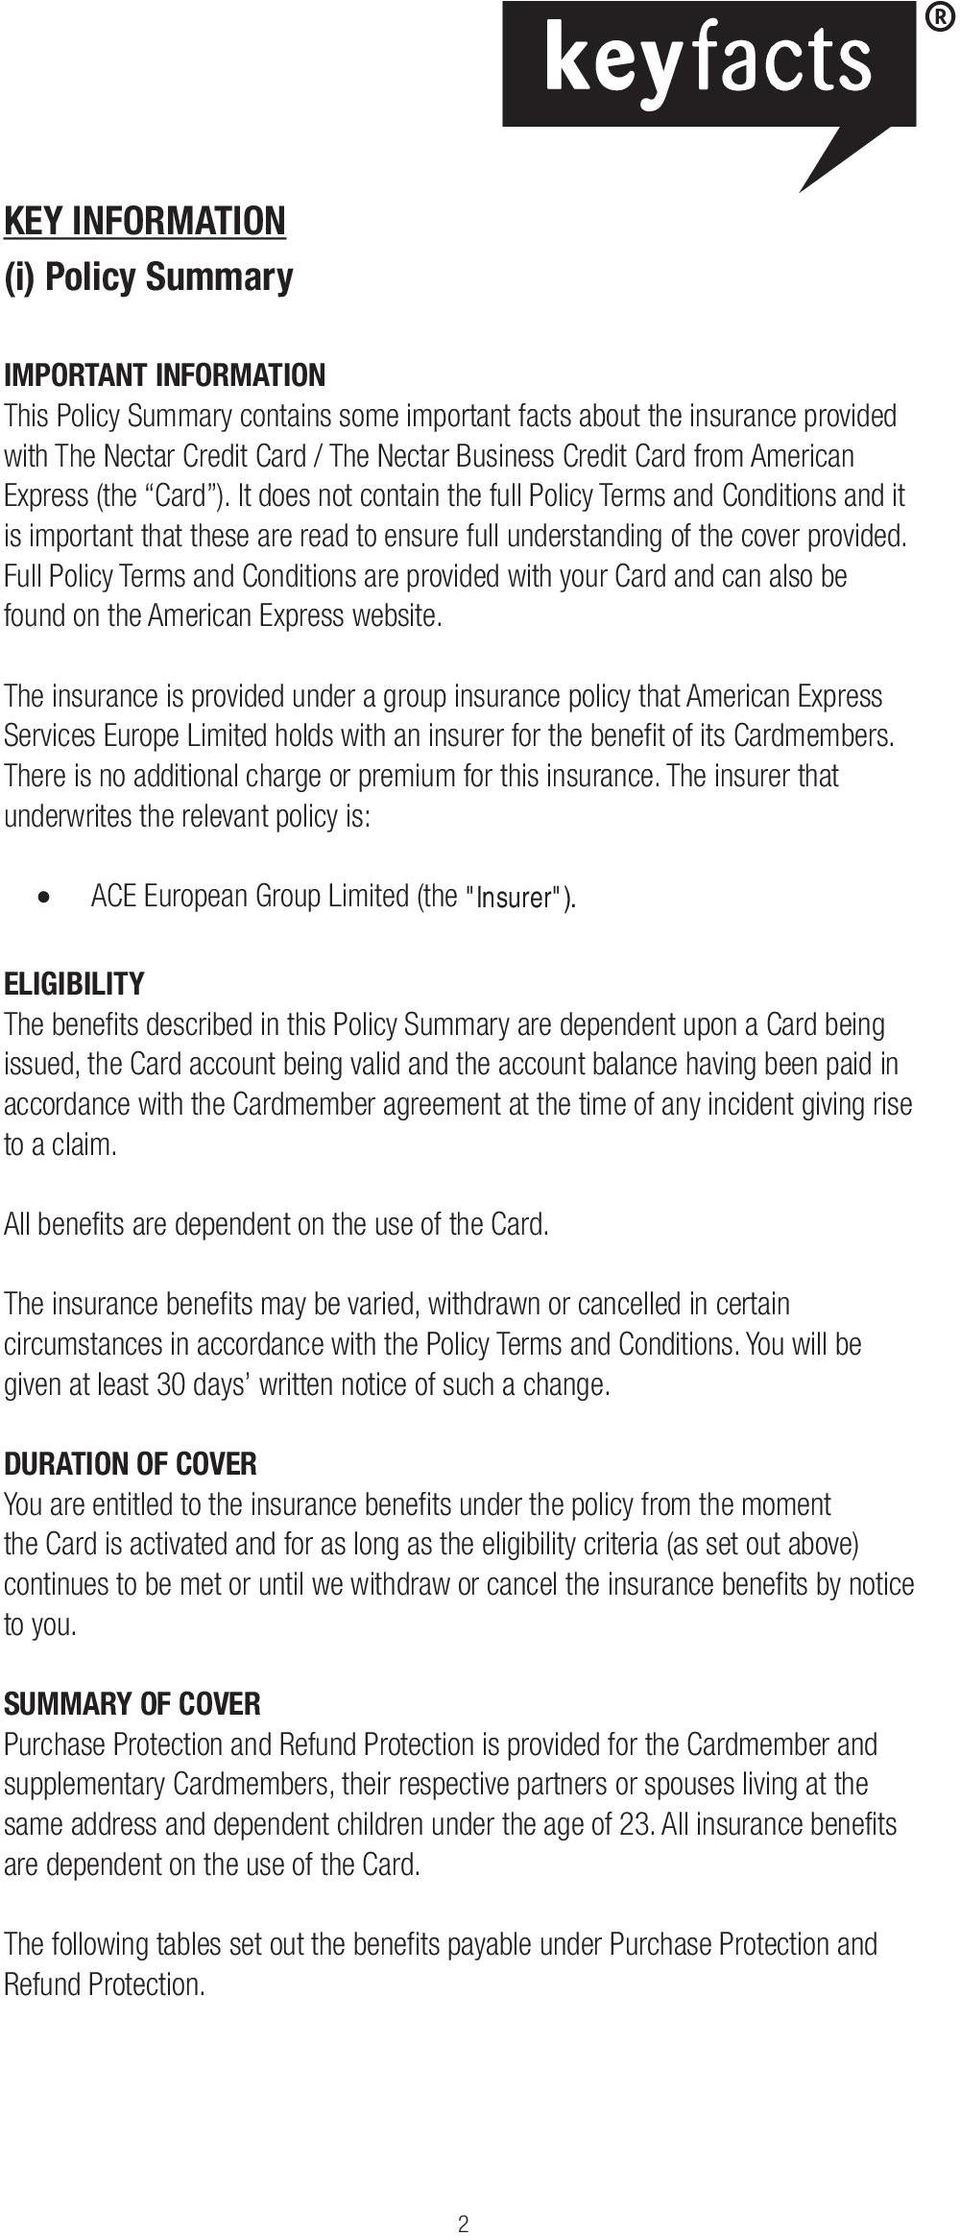 Full Policy Terms and Conditions are provided with your Card and can also be found on the American Express website.